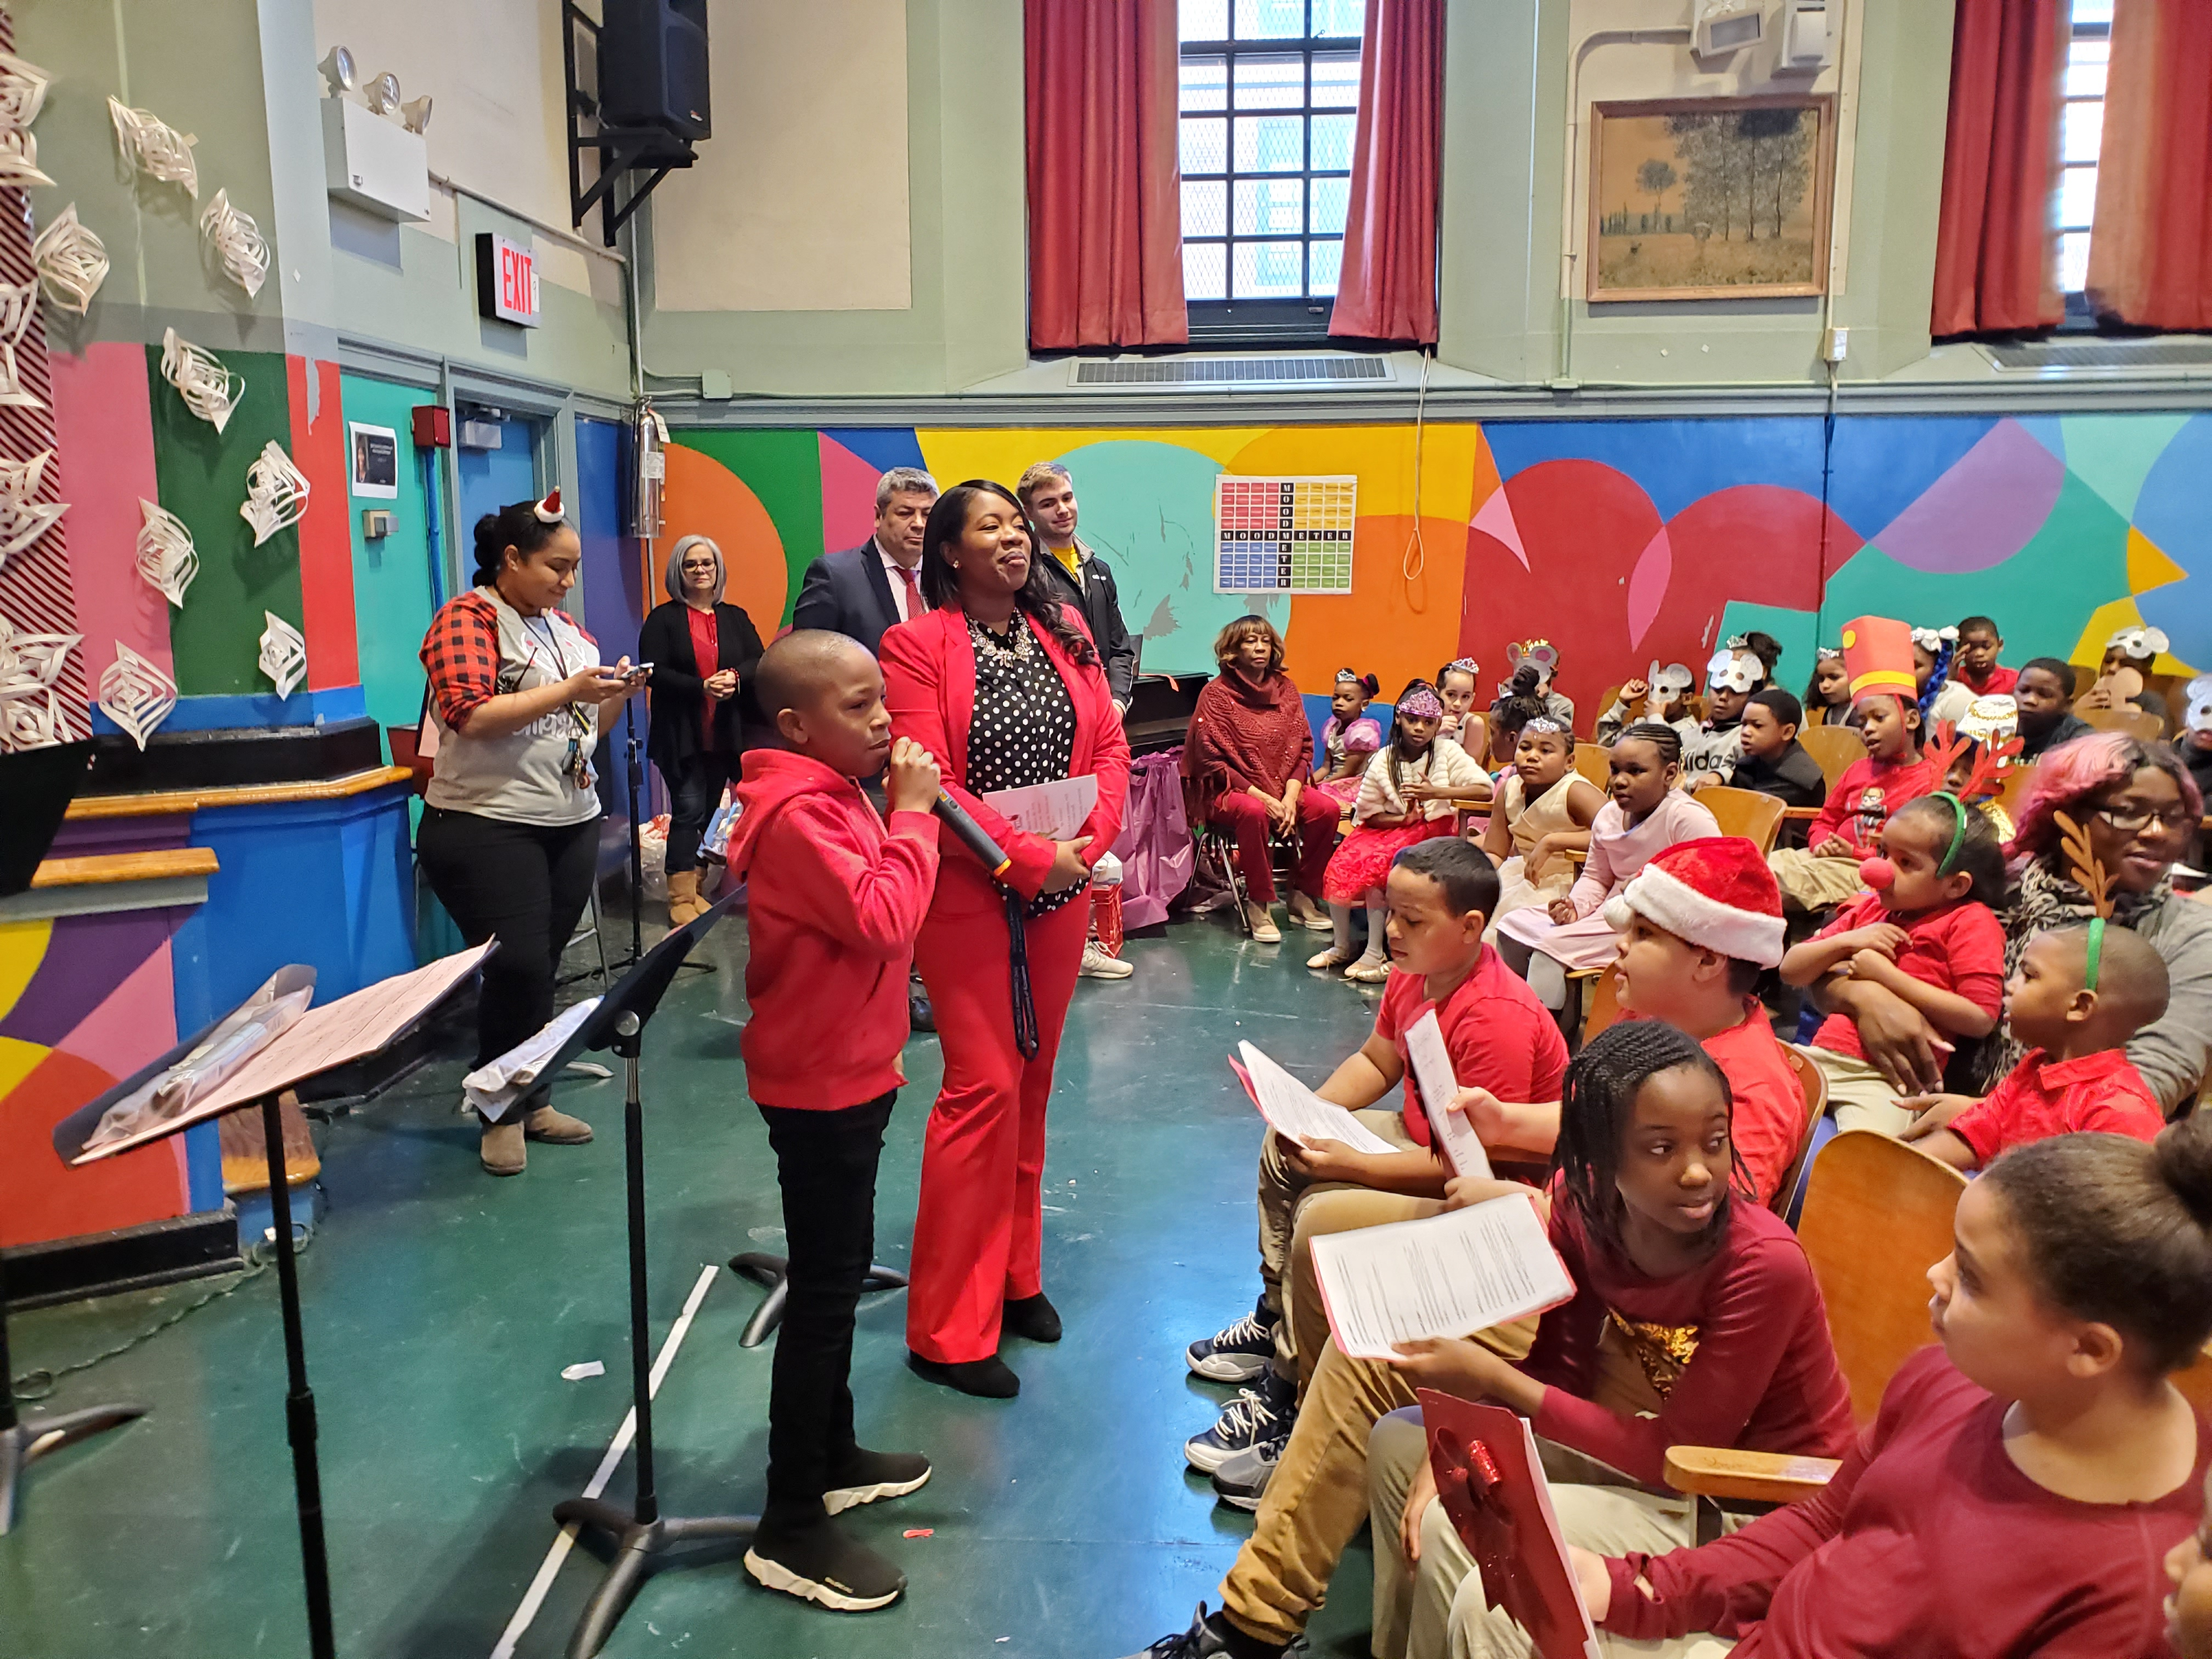 Students dressed in red and talking on microphone during Holiday show.